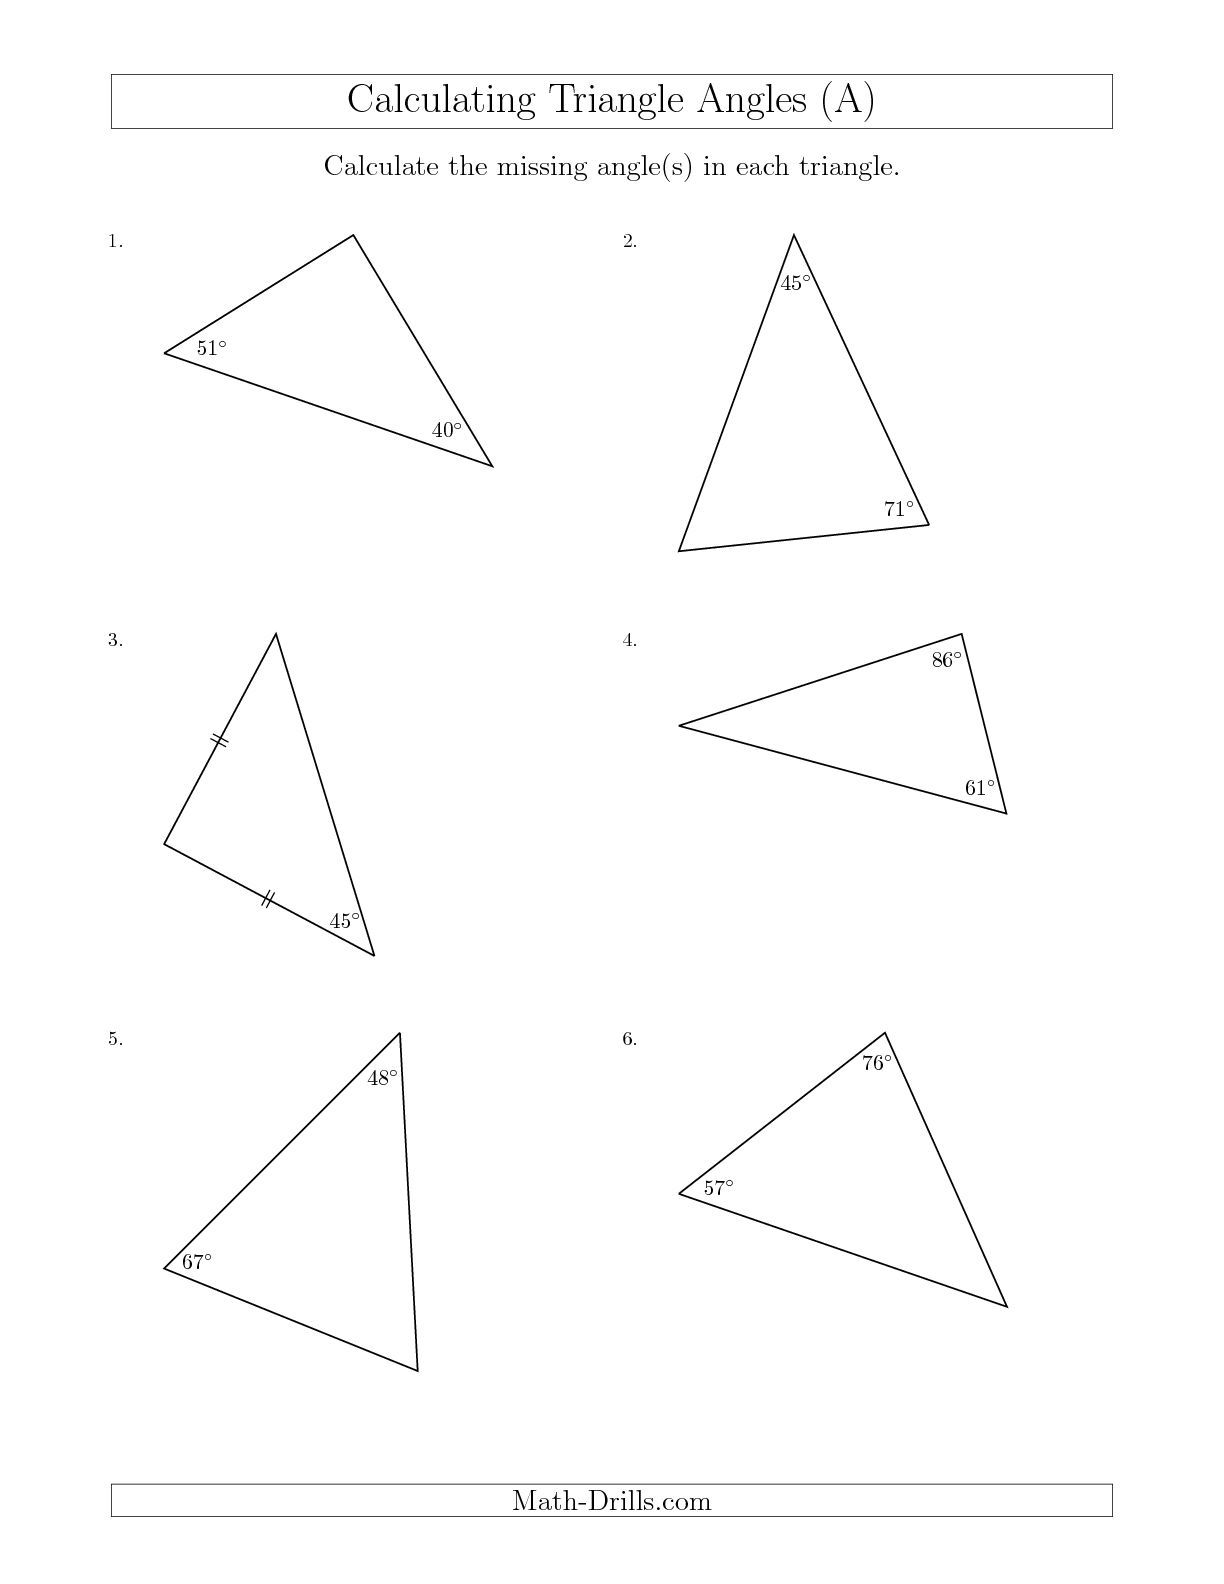 Worksheets Triangle Worksheet new calculating angles of a triangle given the other math worksheet freemath